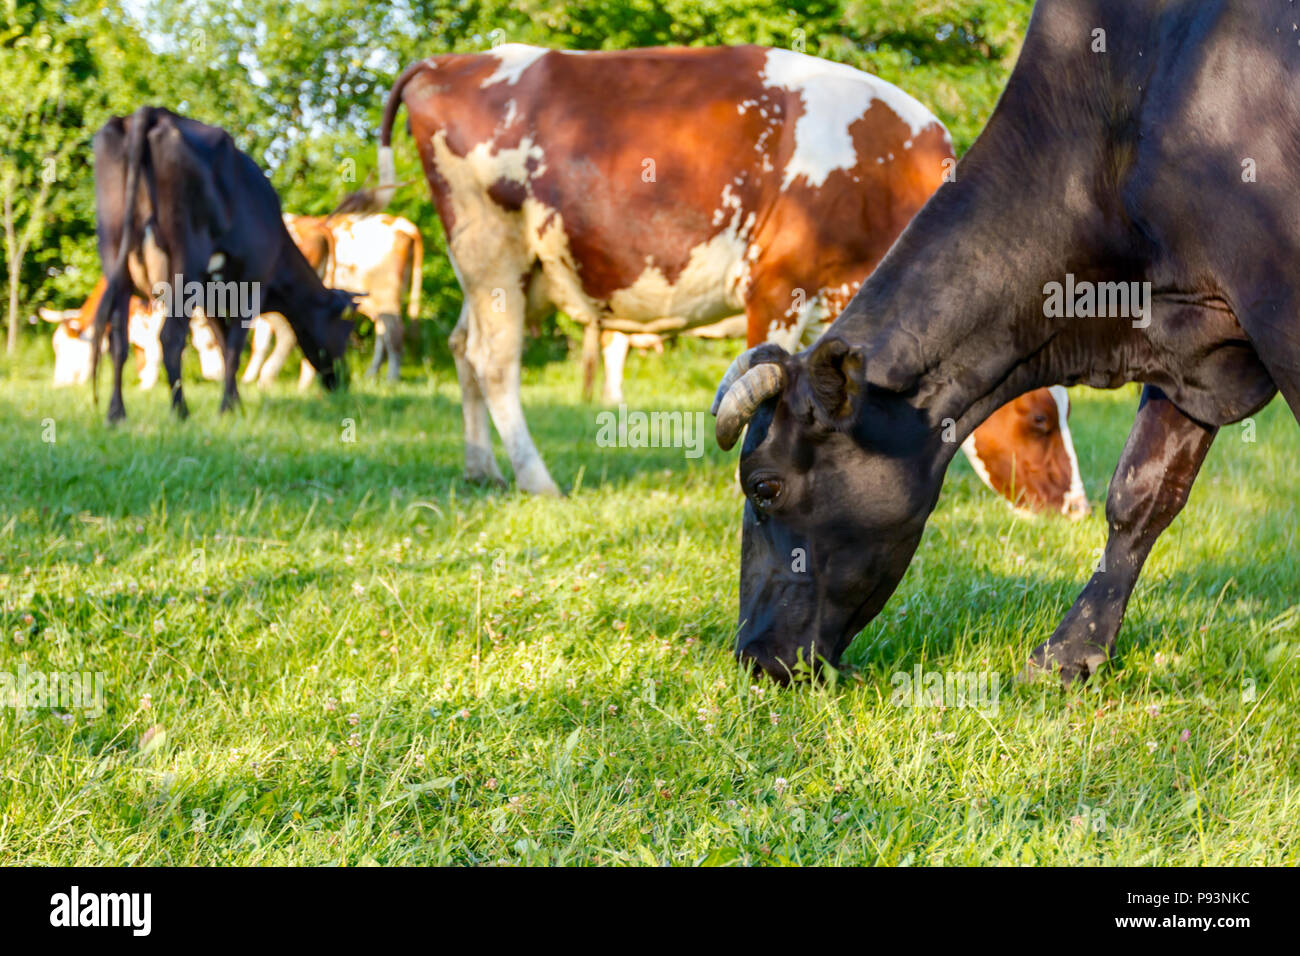 Herd of domestic bloodstock cows are grazing grass in rural village. - Stock Image